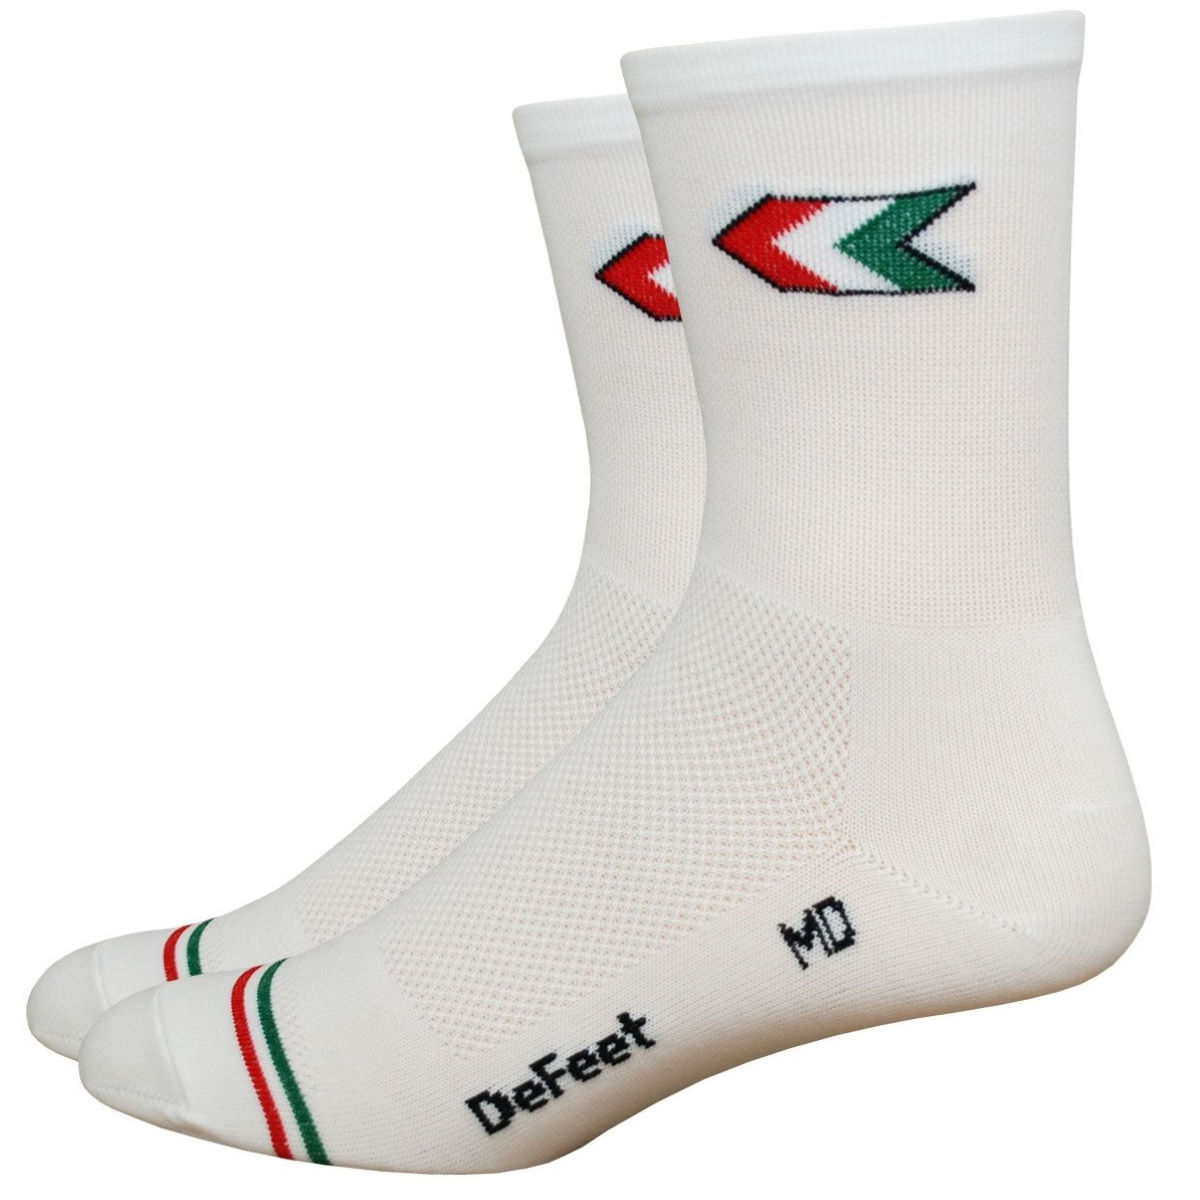 Chaussettes DeFeet Aireator Tall Giro - L Blanc Chaussettes vélo